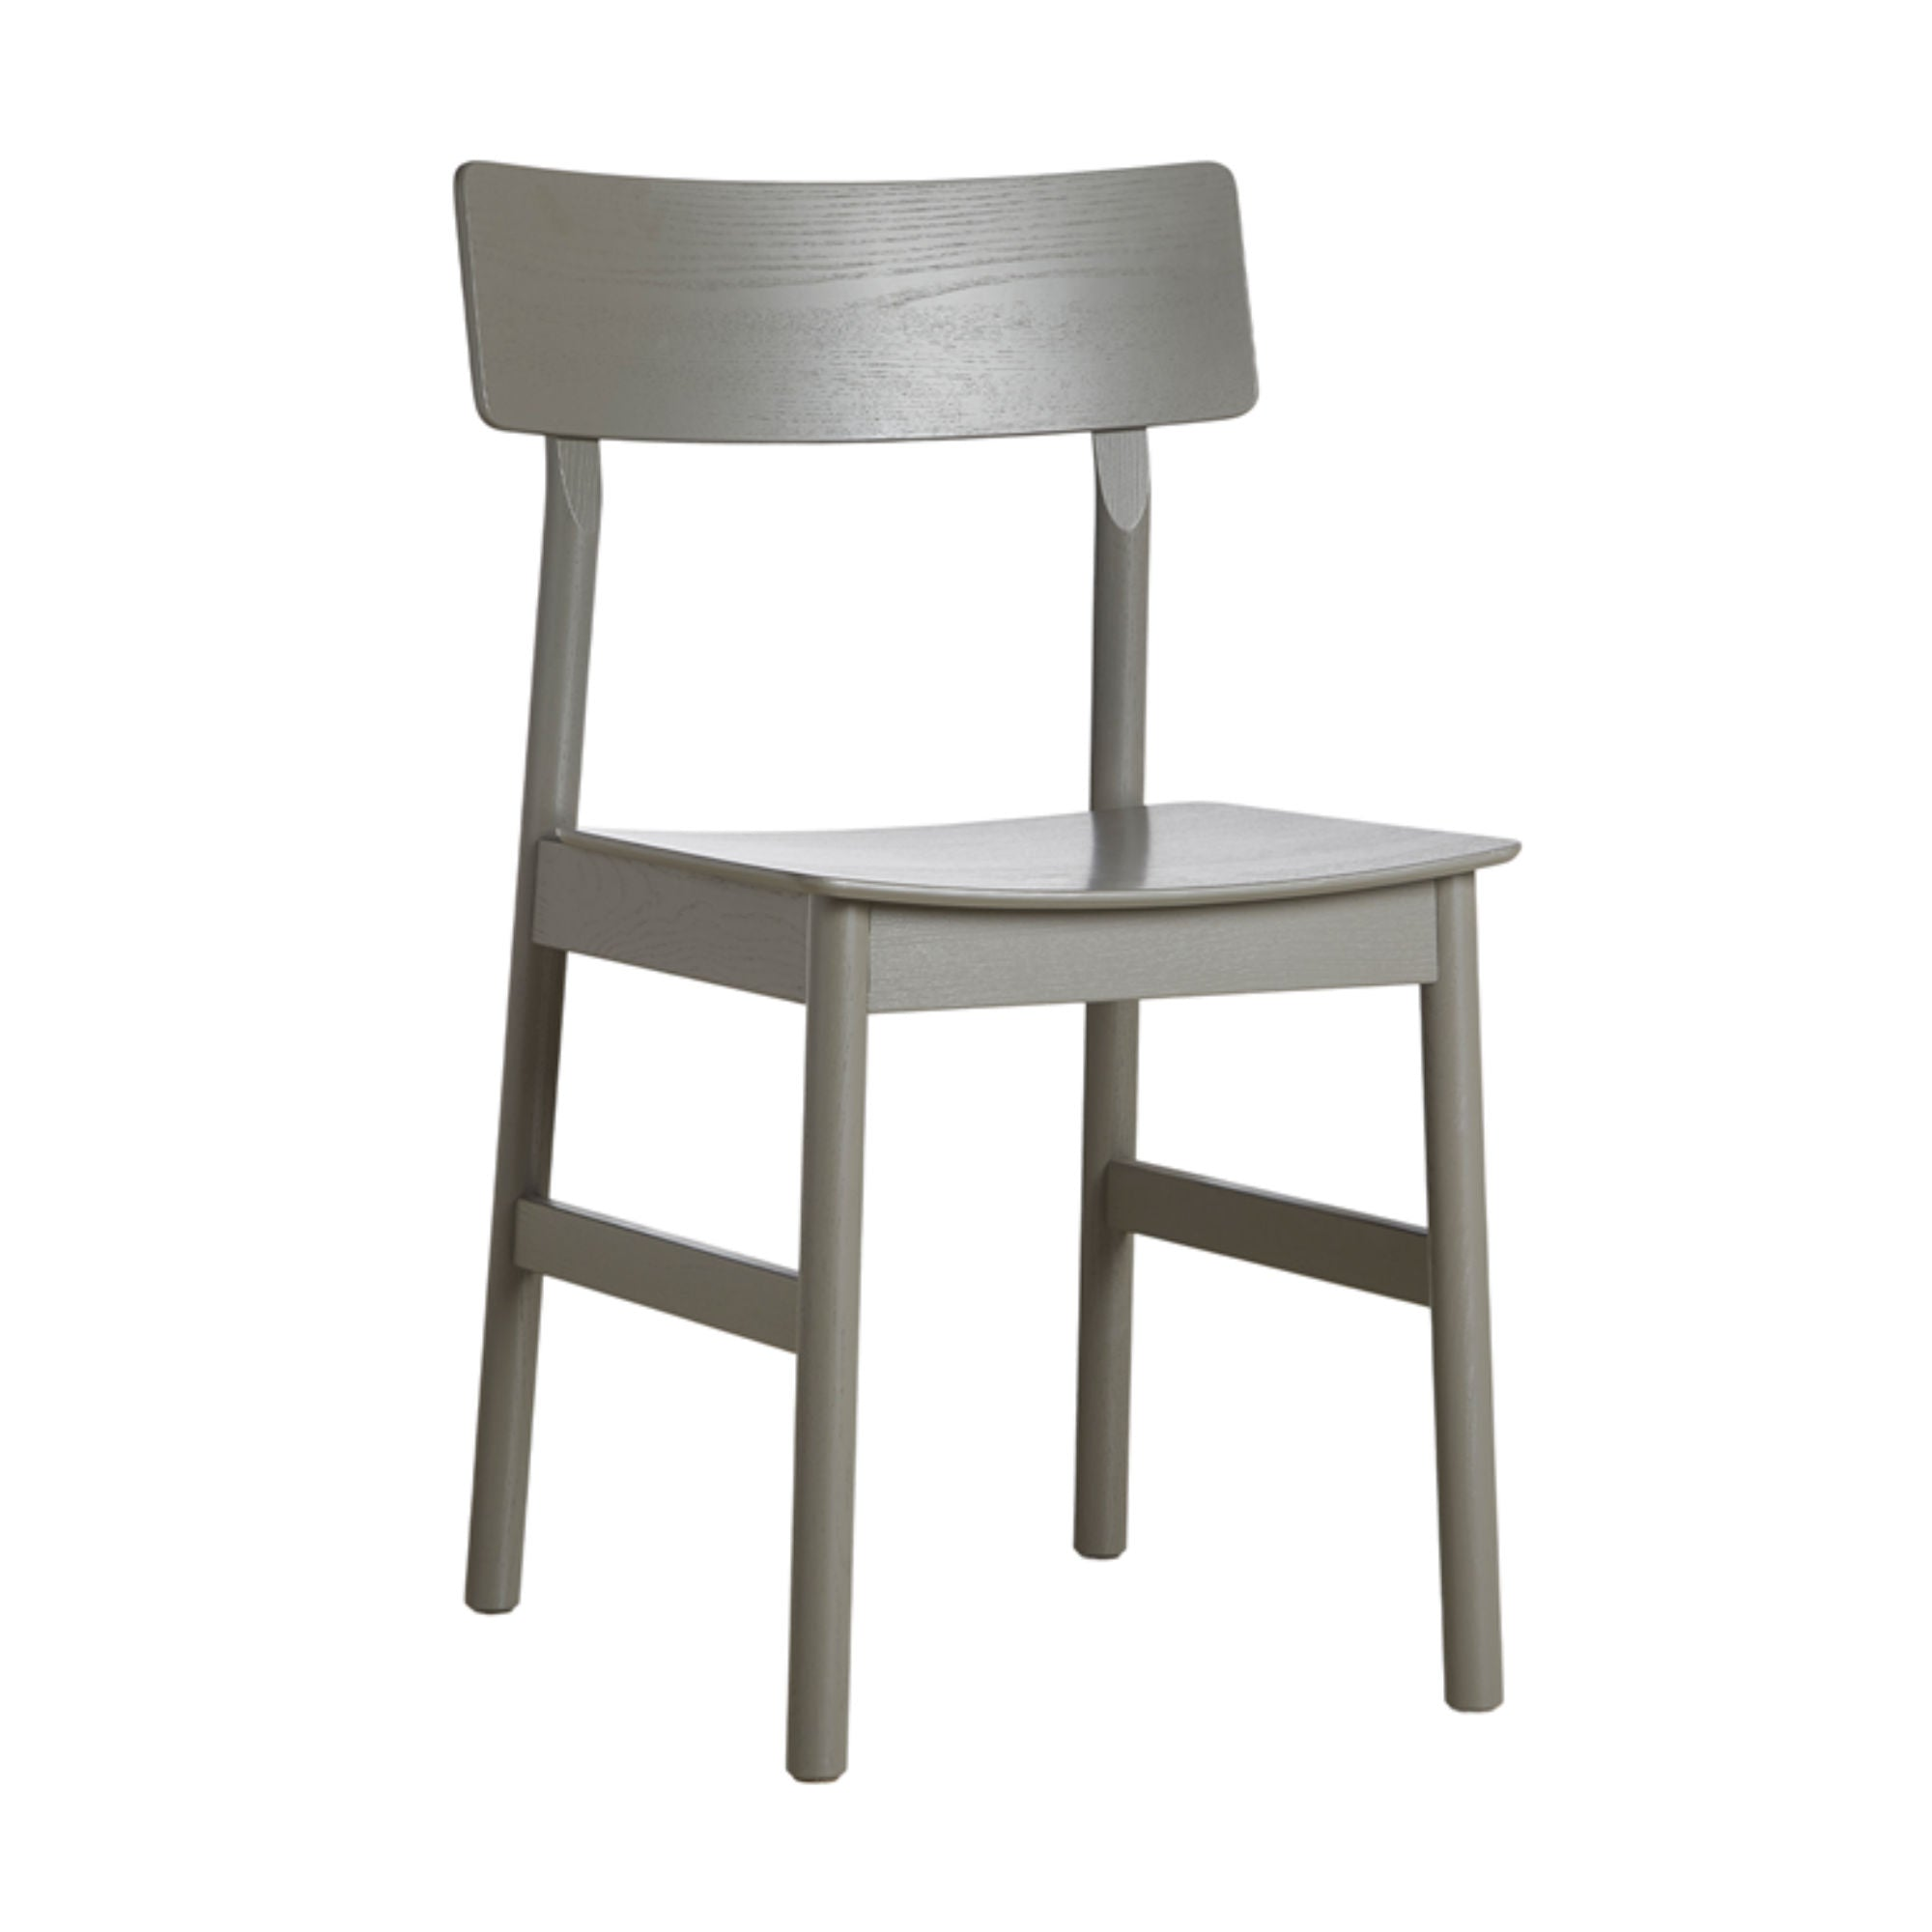 Woud Pause Dining Chair , Taupe Painted Ash